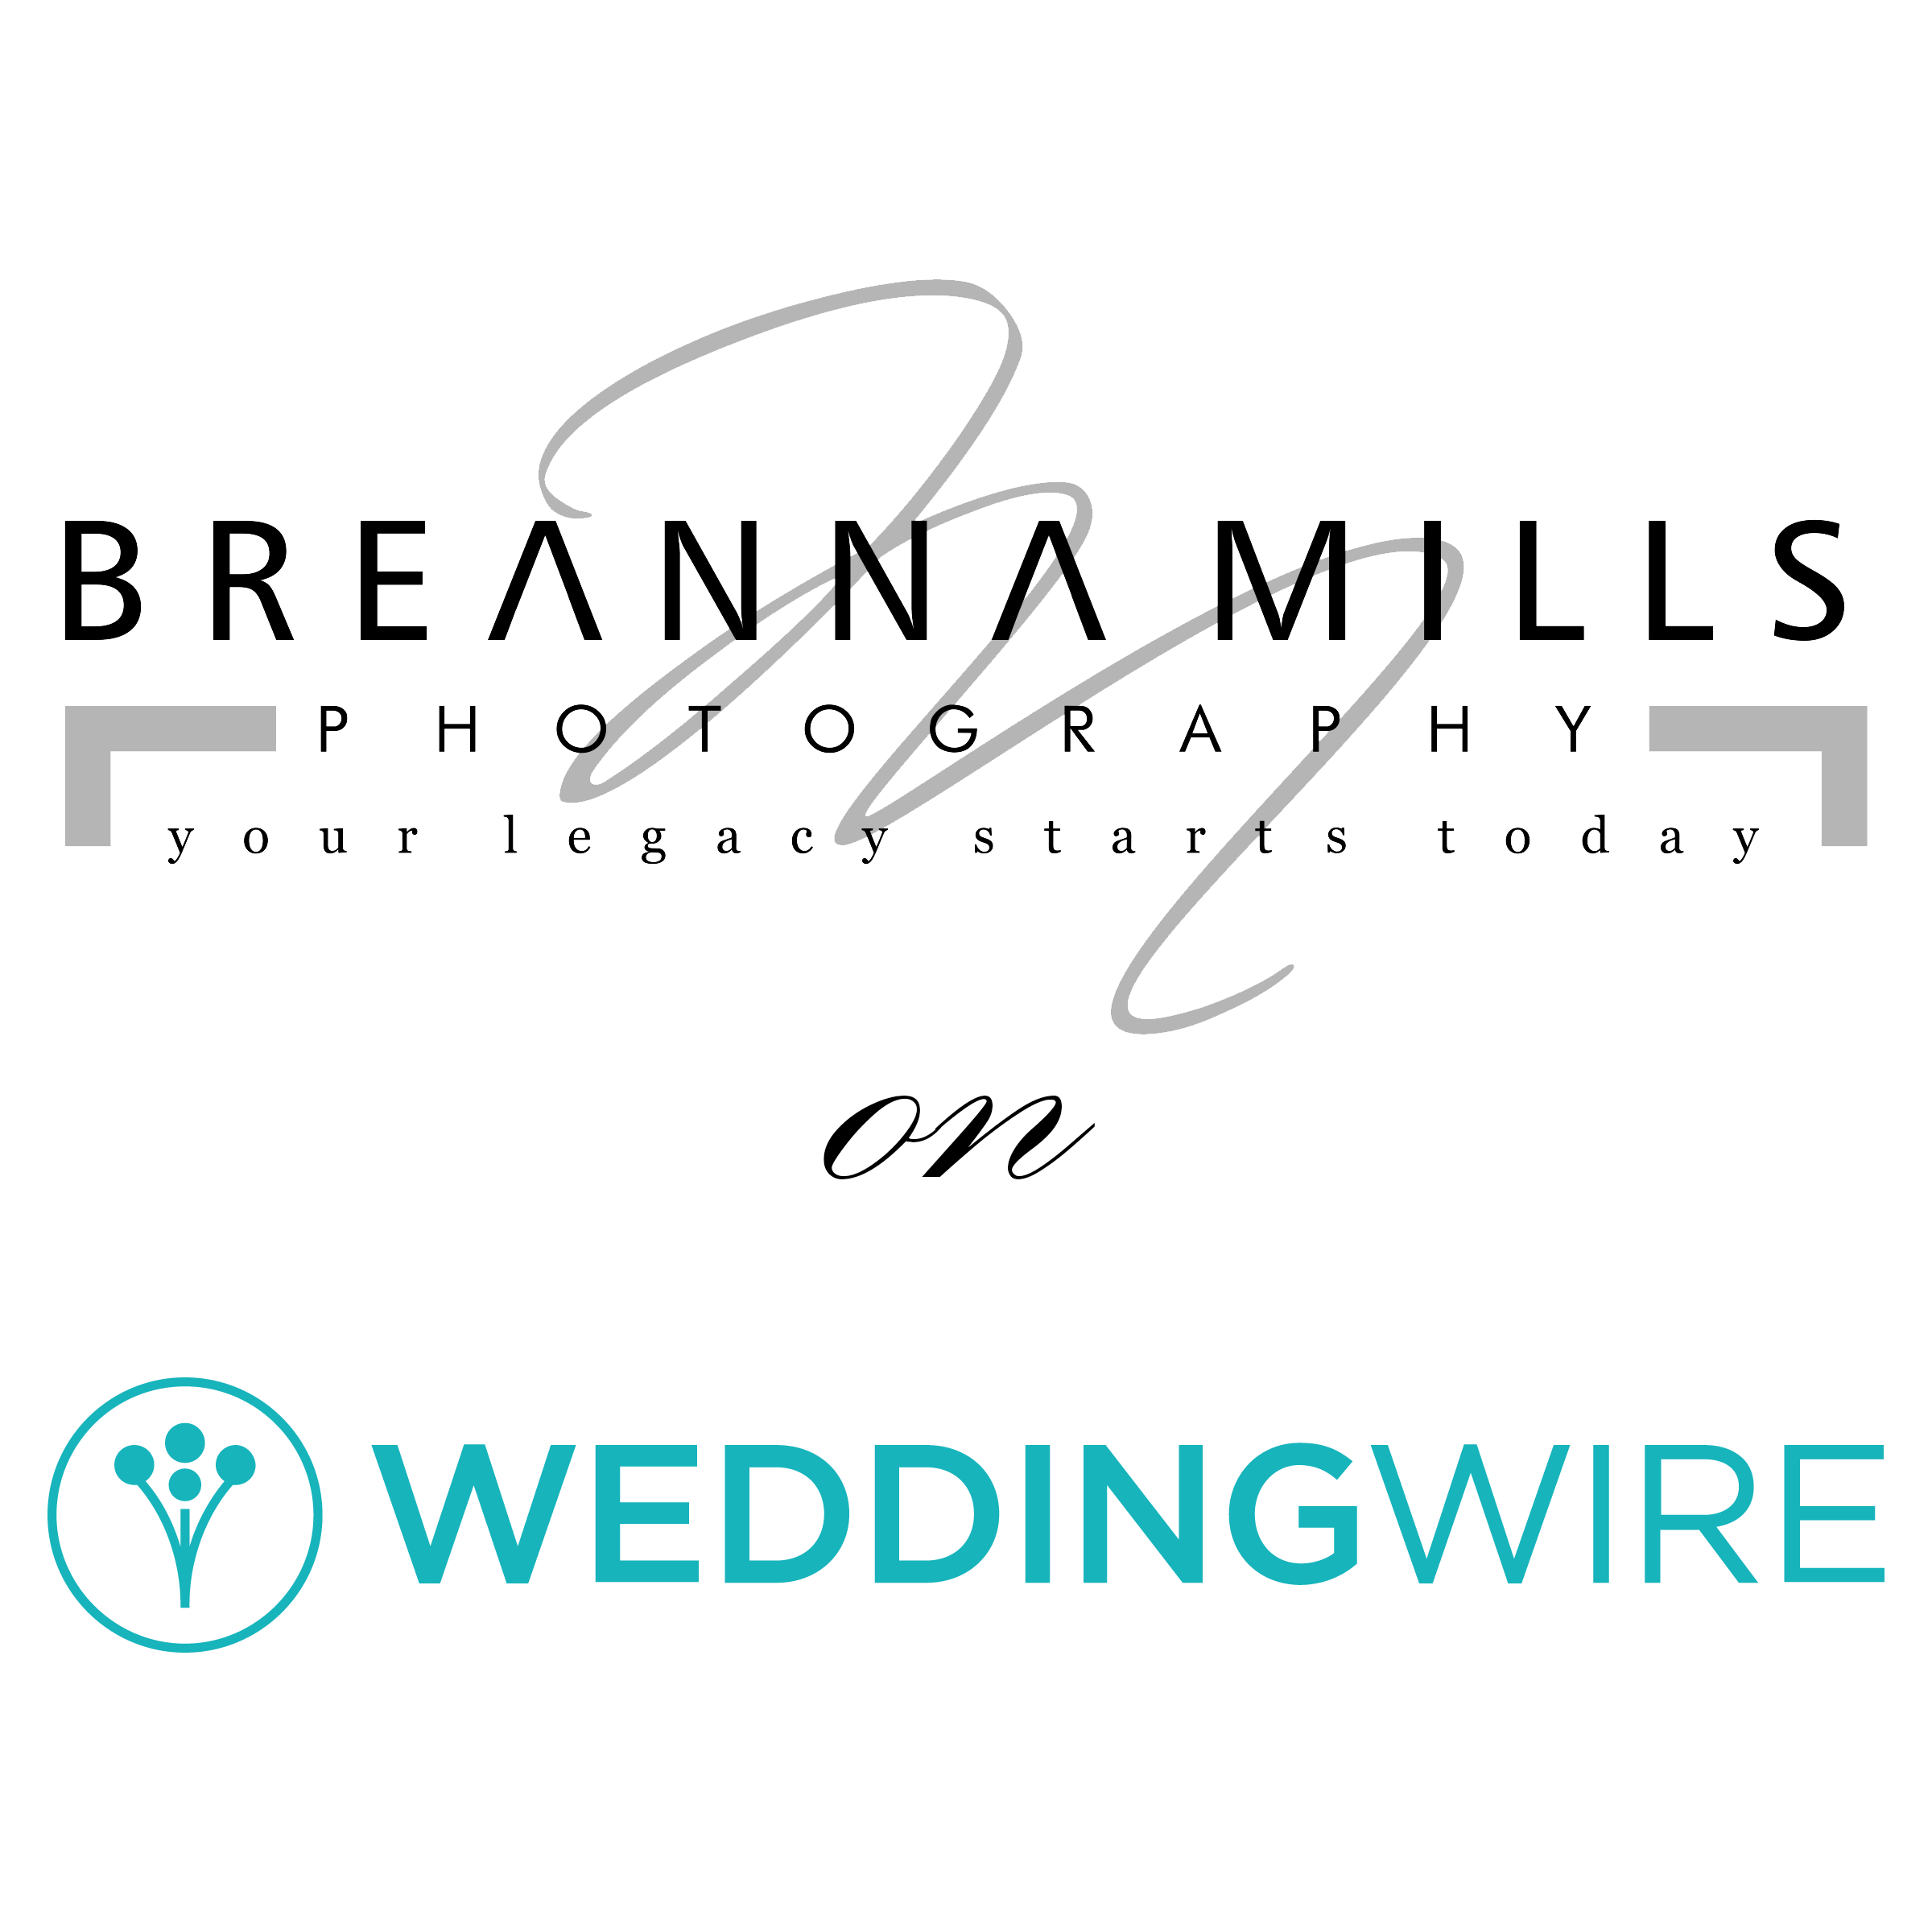 Find Breanna Mills Photography on The Knot.